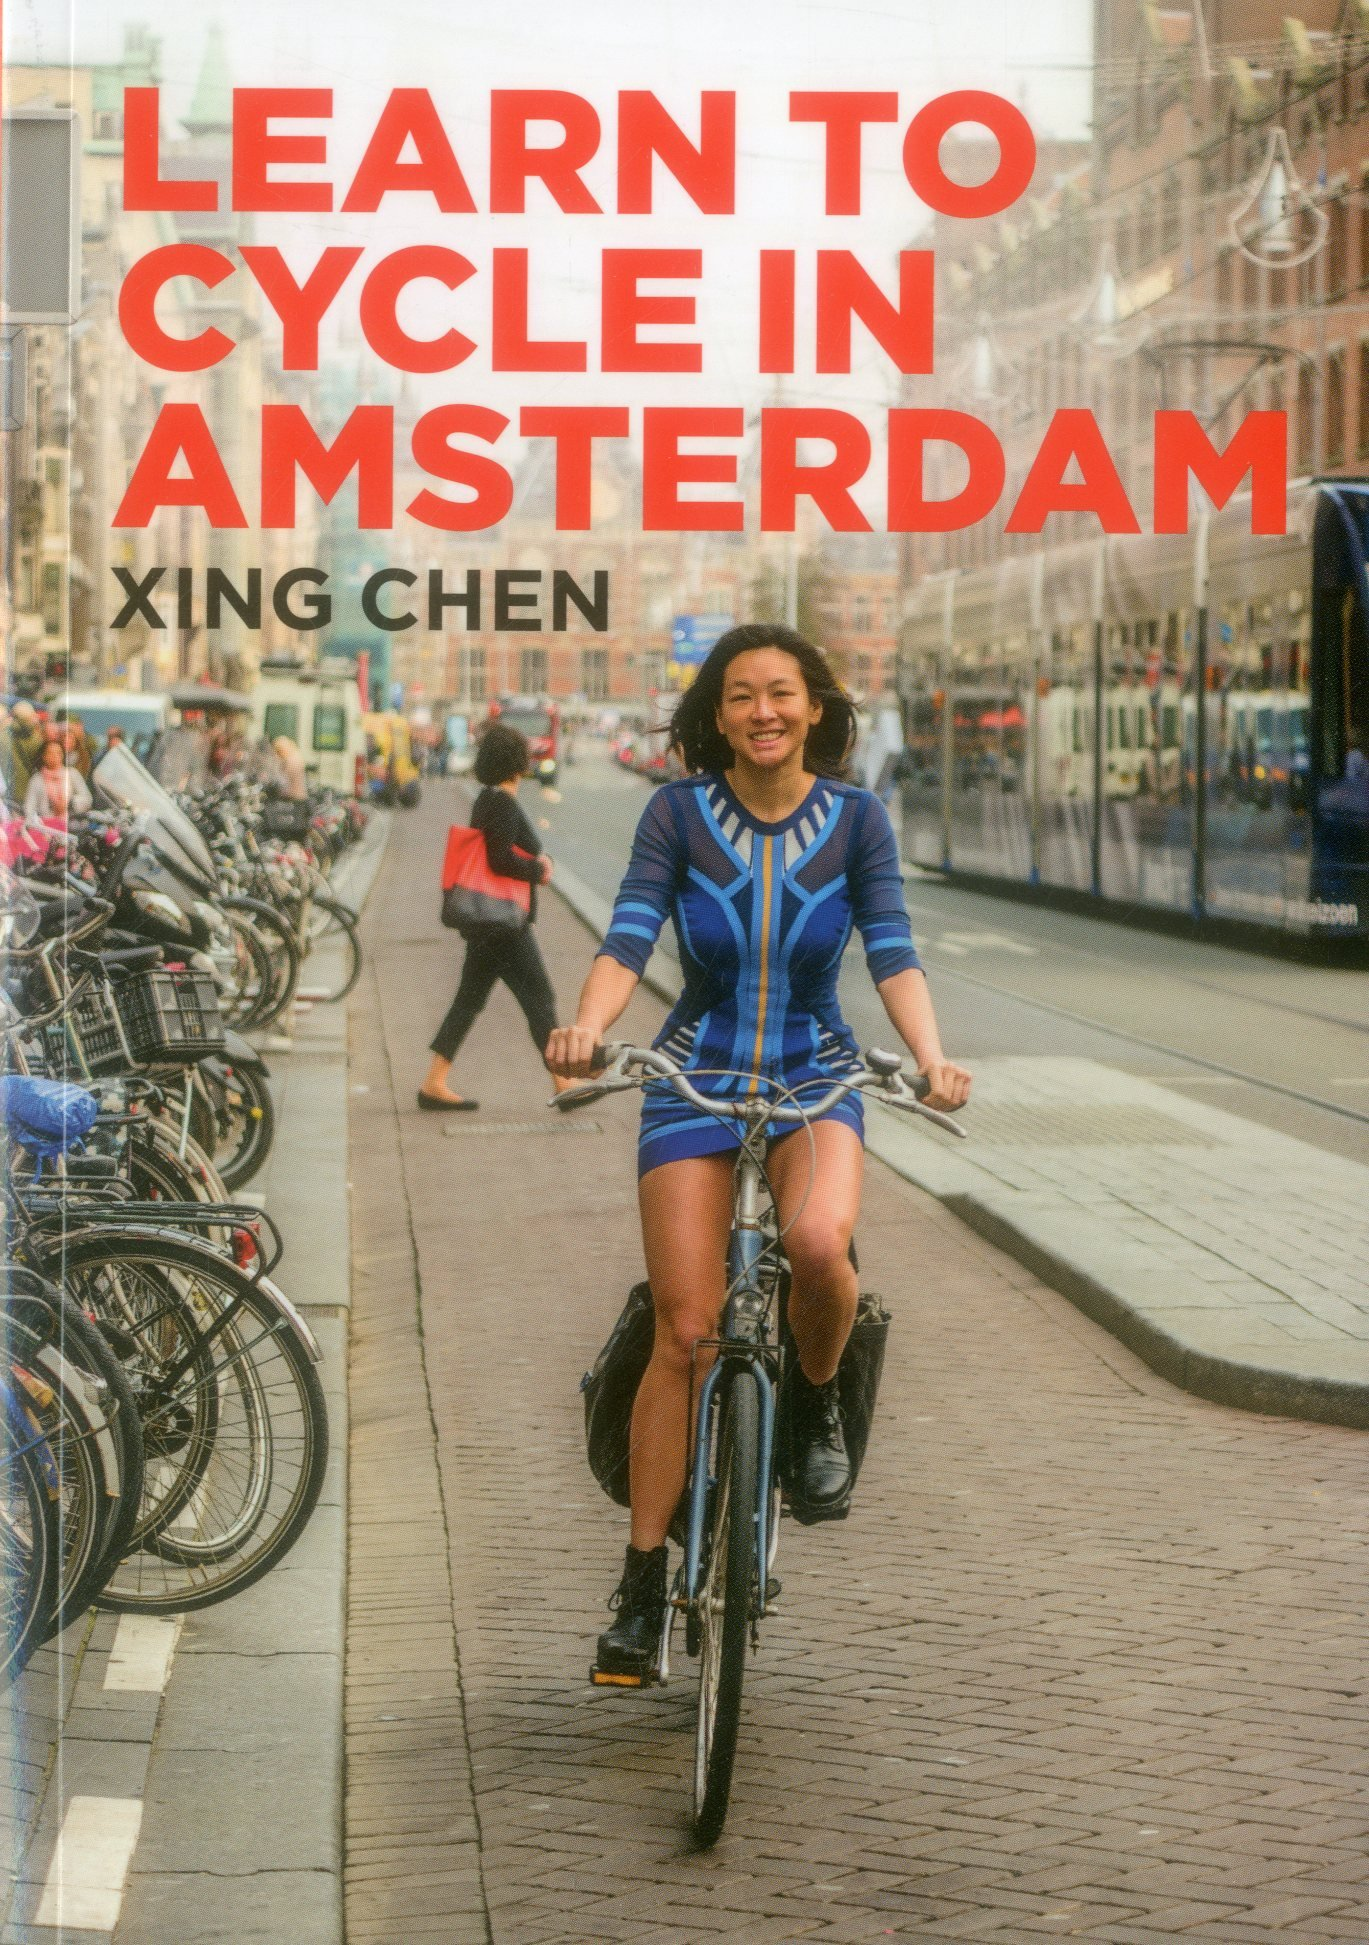 Learn Cycle Amsterdam Xing Chen product image